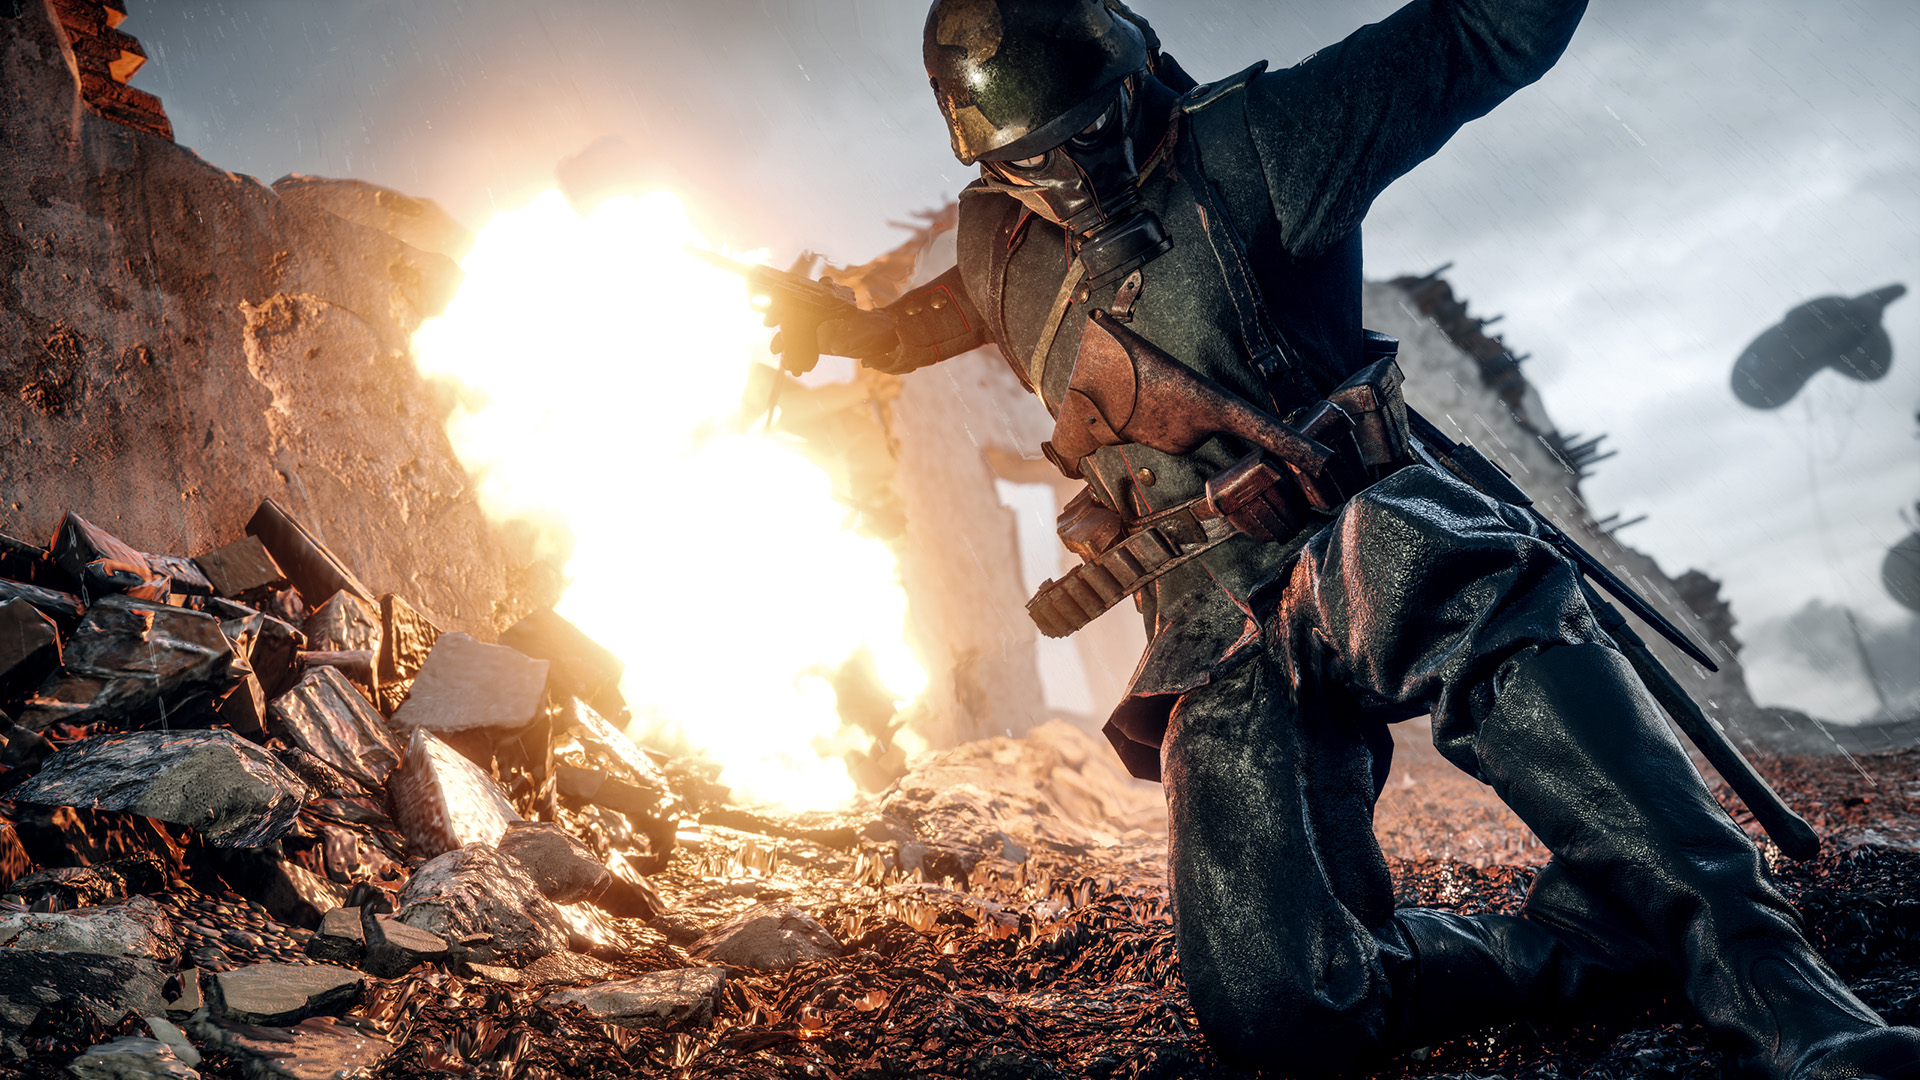 Ideal Video Game Battlefield 1, HD Games, 4k Wallpapers, Images  MR66